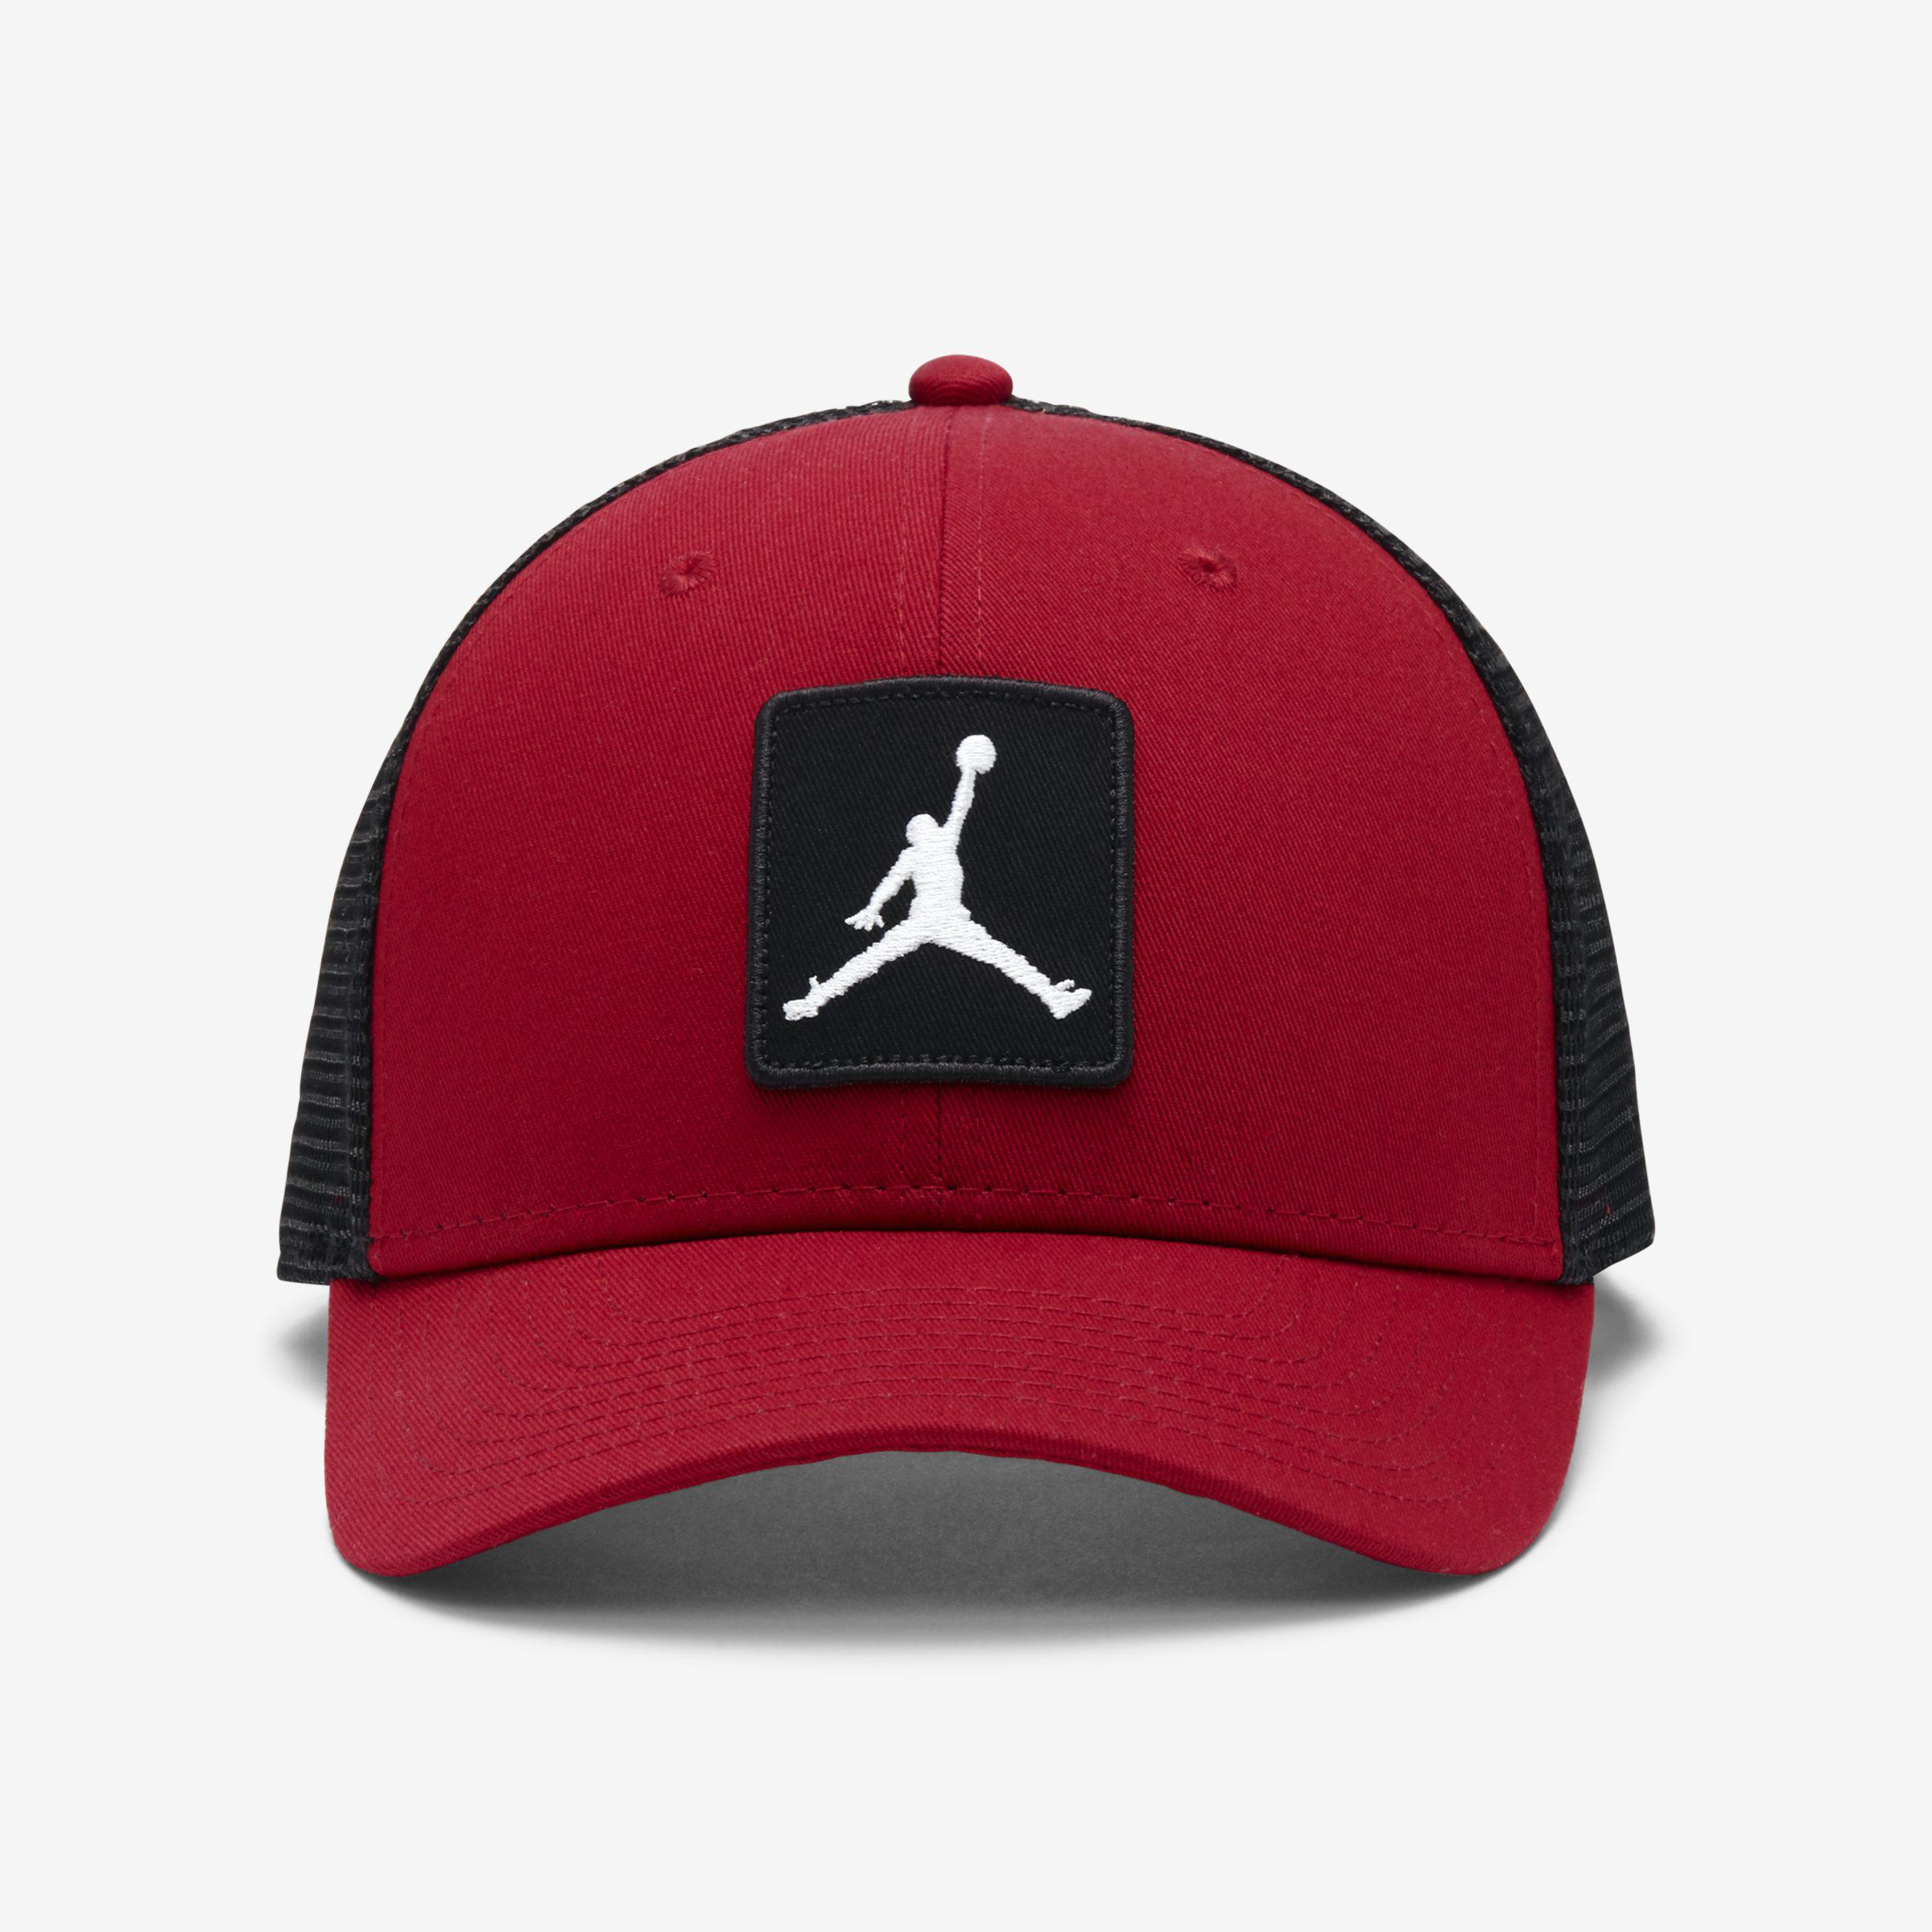 27cd031b0de Nike Jordan Jumpman Classic99 Trucker Adjustable Hat in Red for Men ...